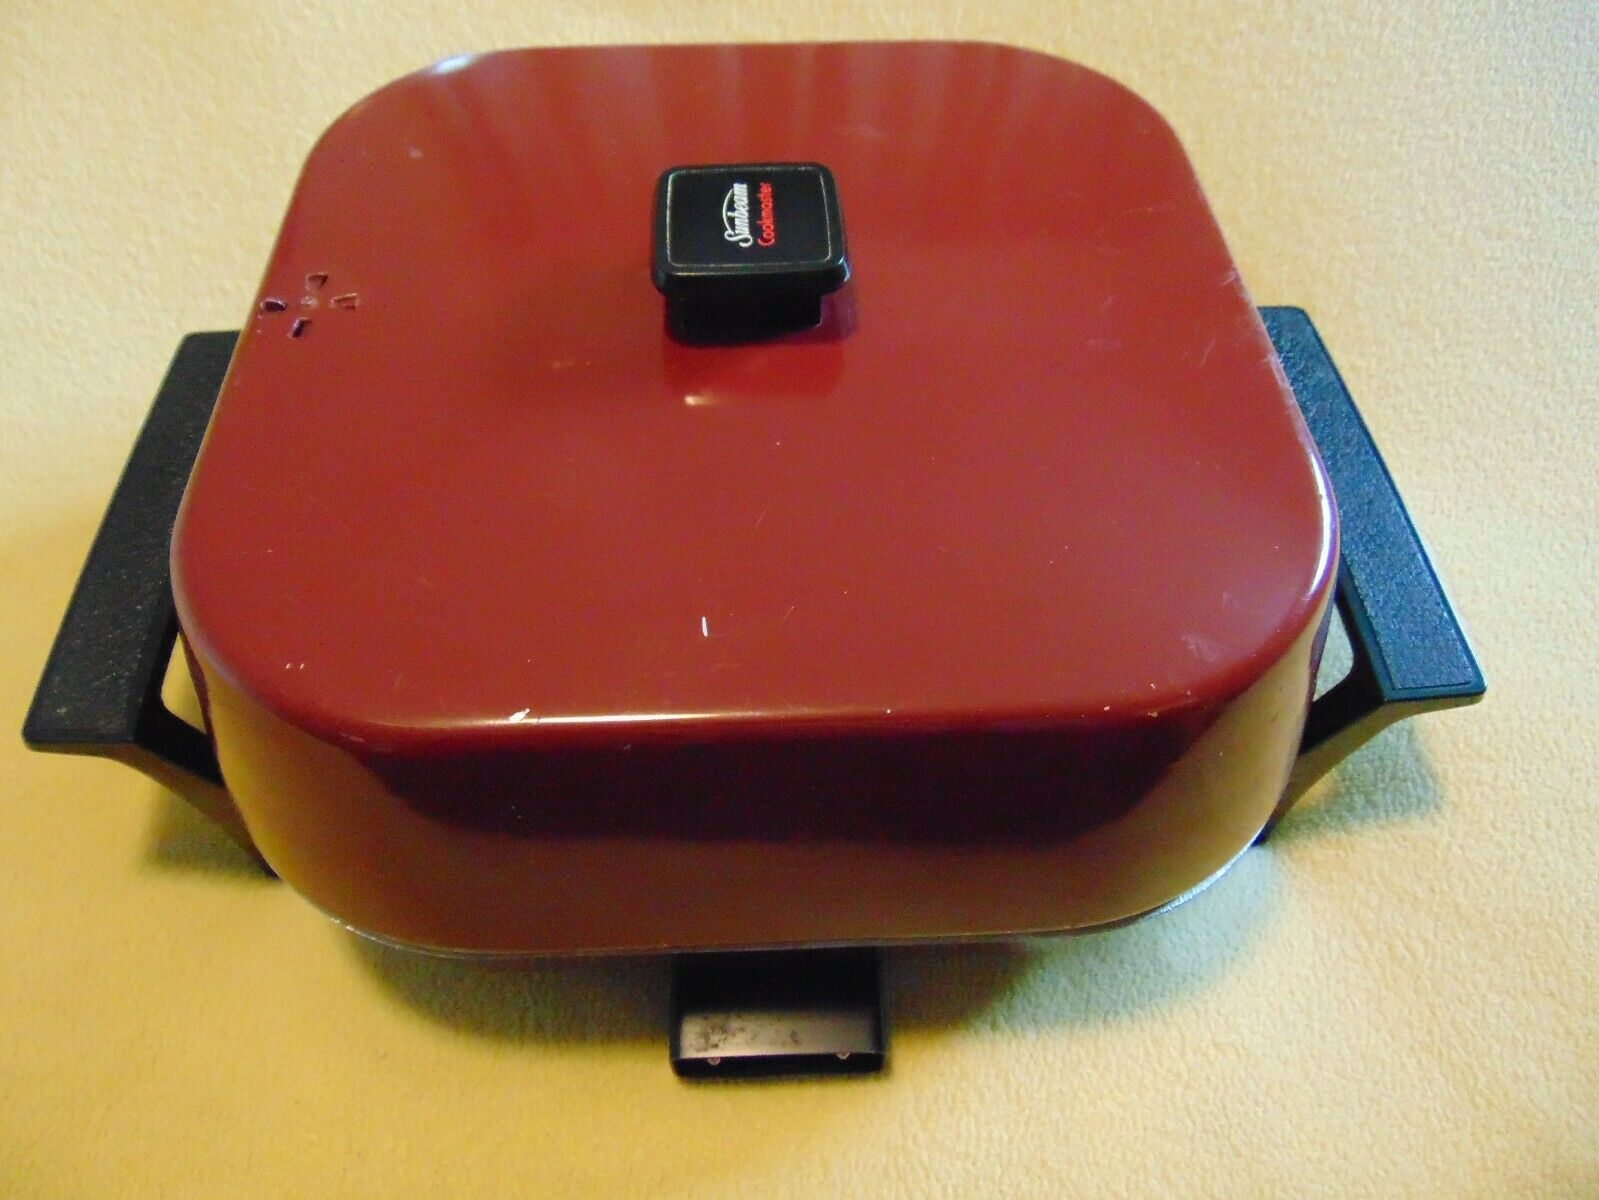 VTG SUNBEAM COOKMASTER RED ELECTRIC FRY PAN 12  HIGH DOME SKILLET 425A series A